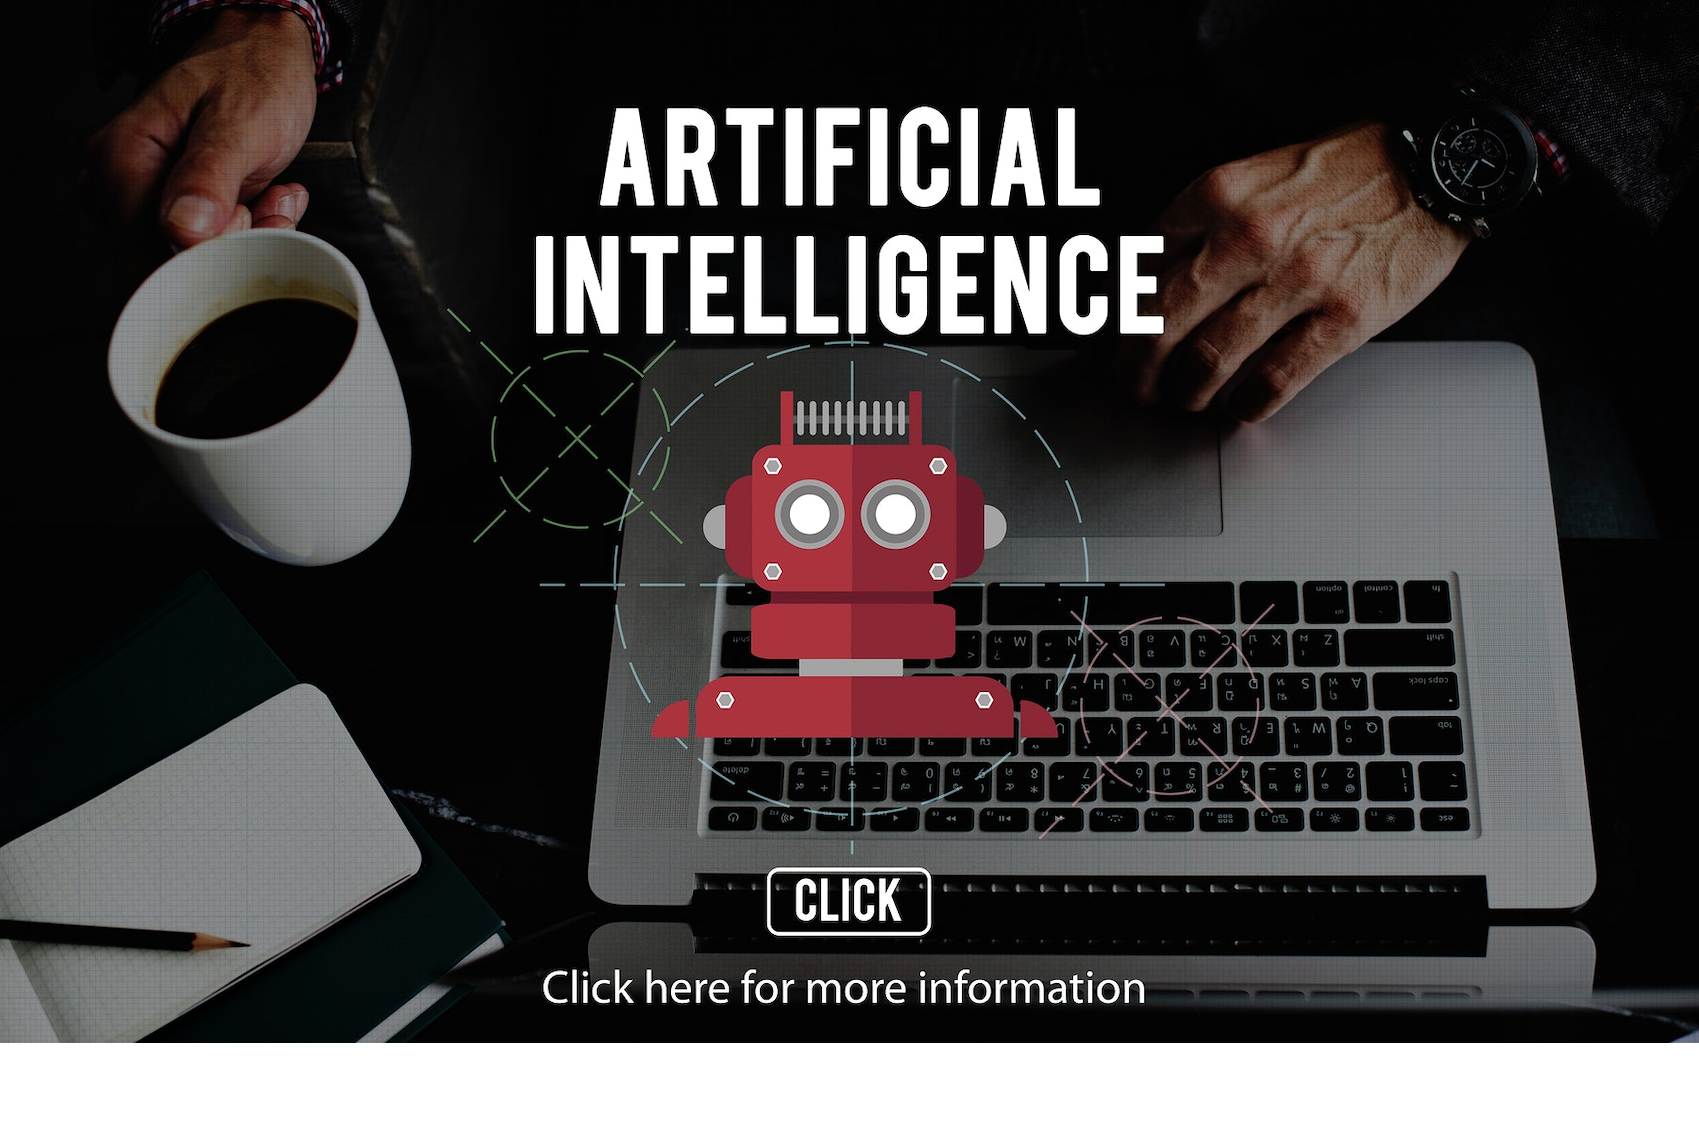 La classificazione dell'Intelligenza Artificiale